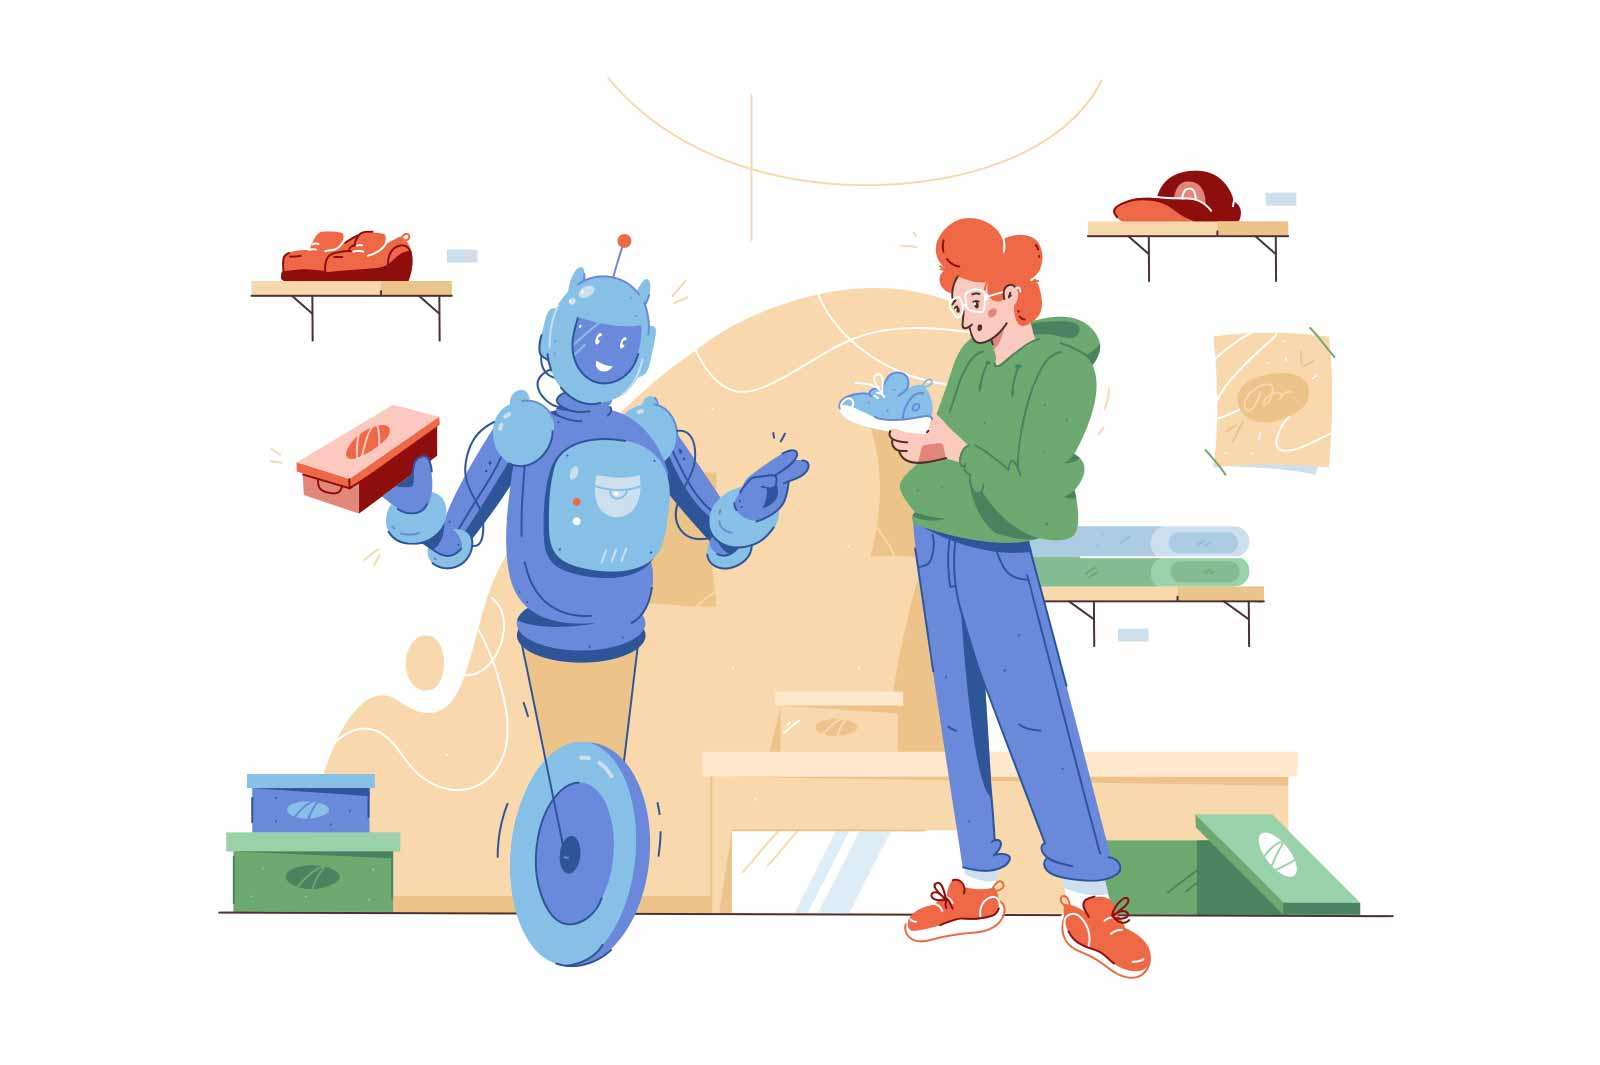 Robot help in choosing shoes vector illustration. Robot providing customer assistance flat style. Artificial intelligence, shopping concept